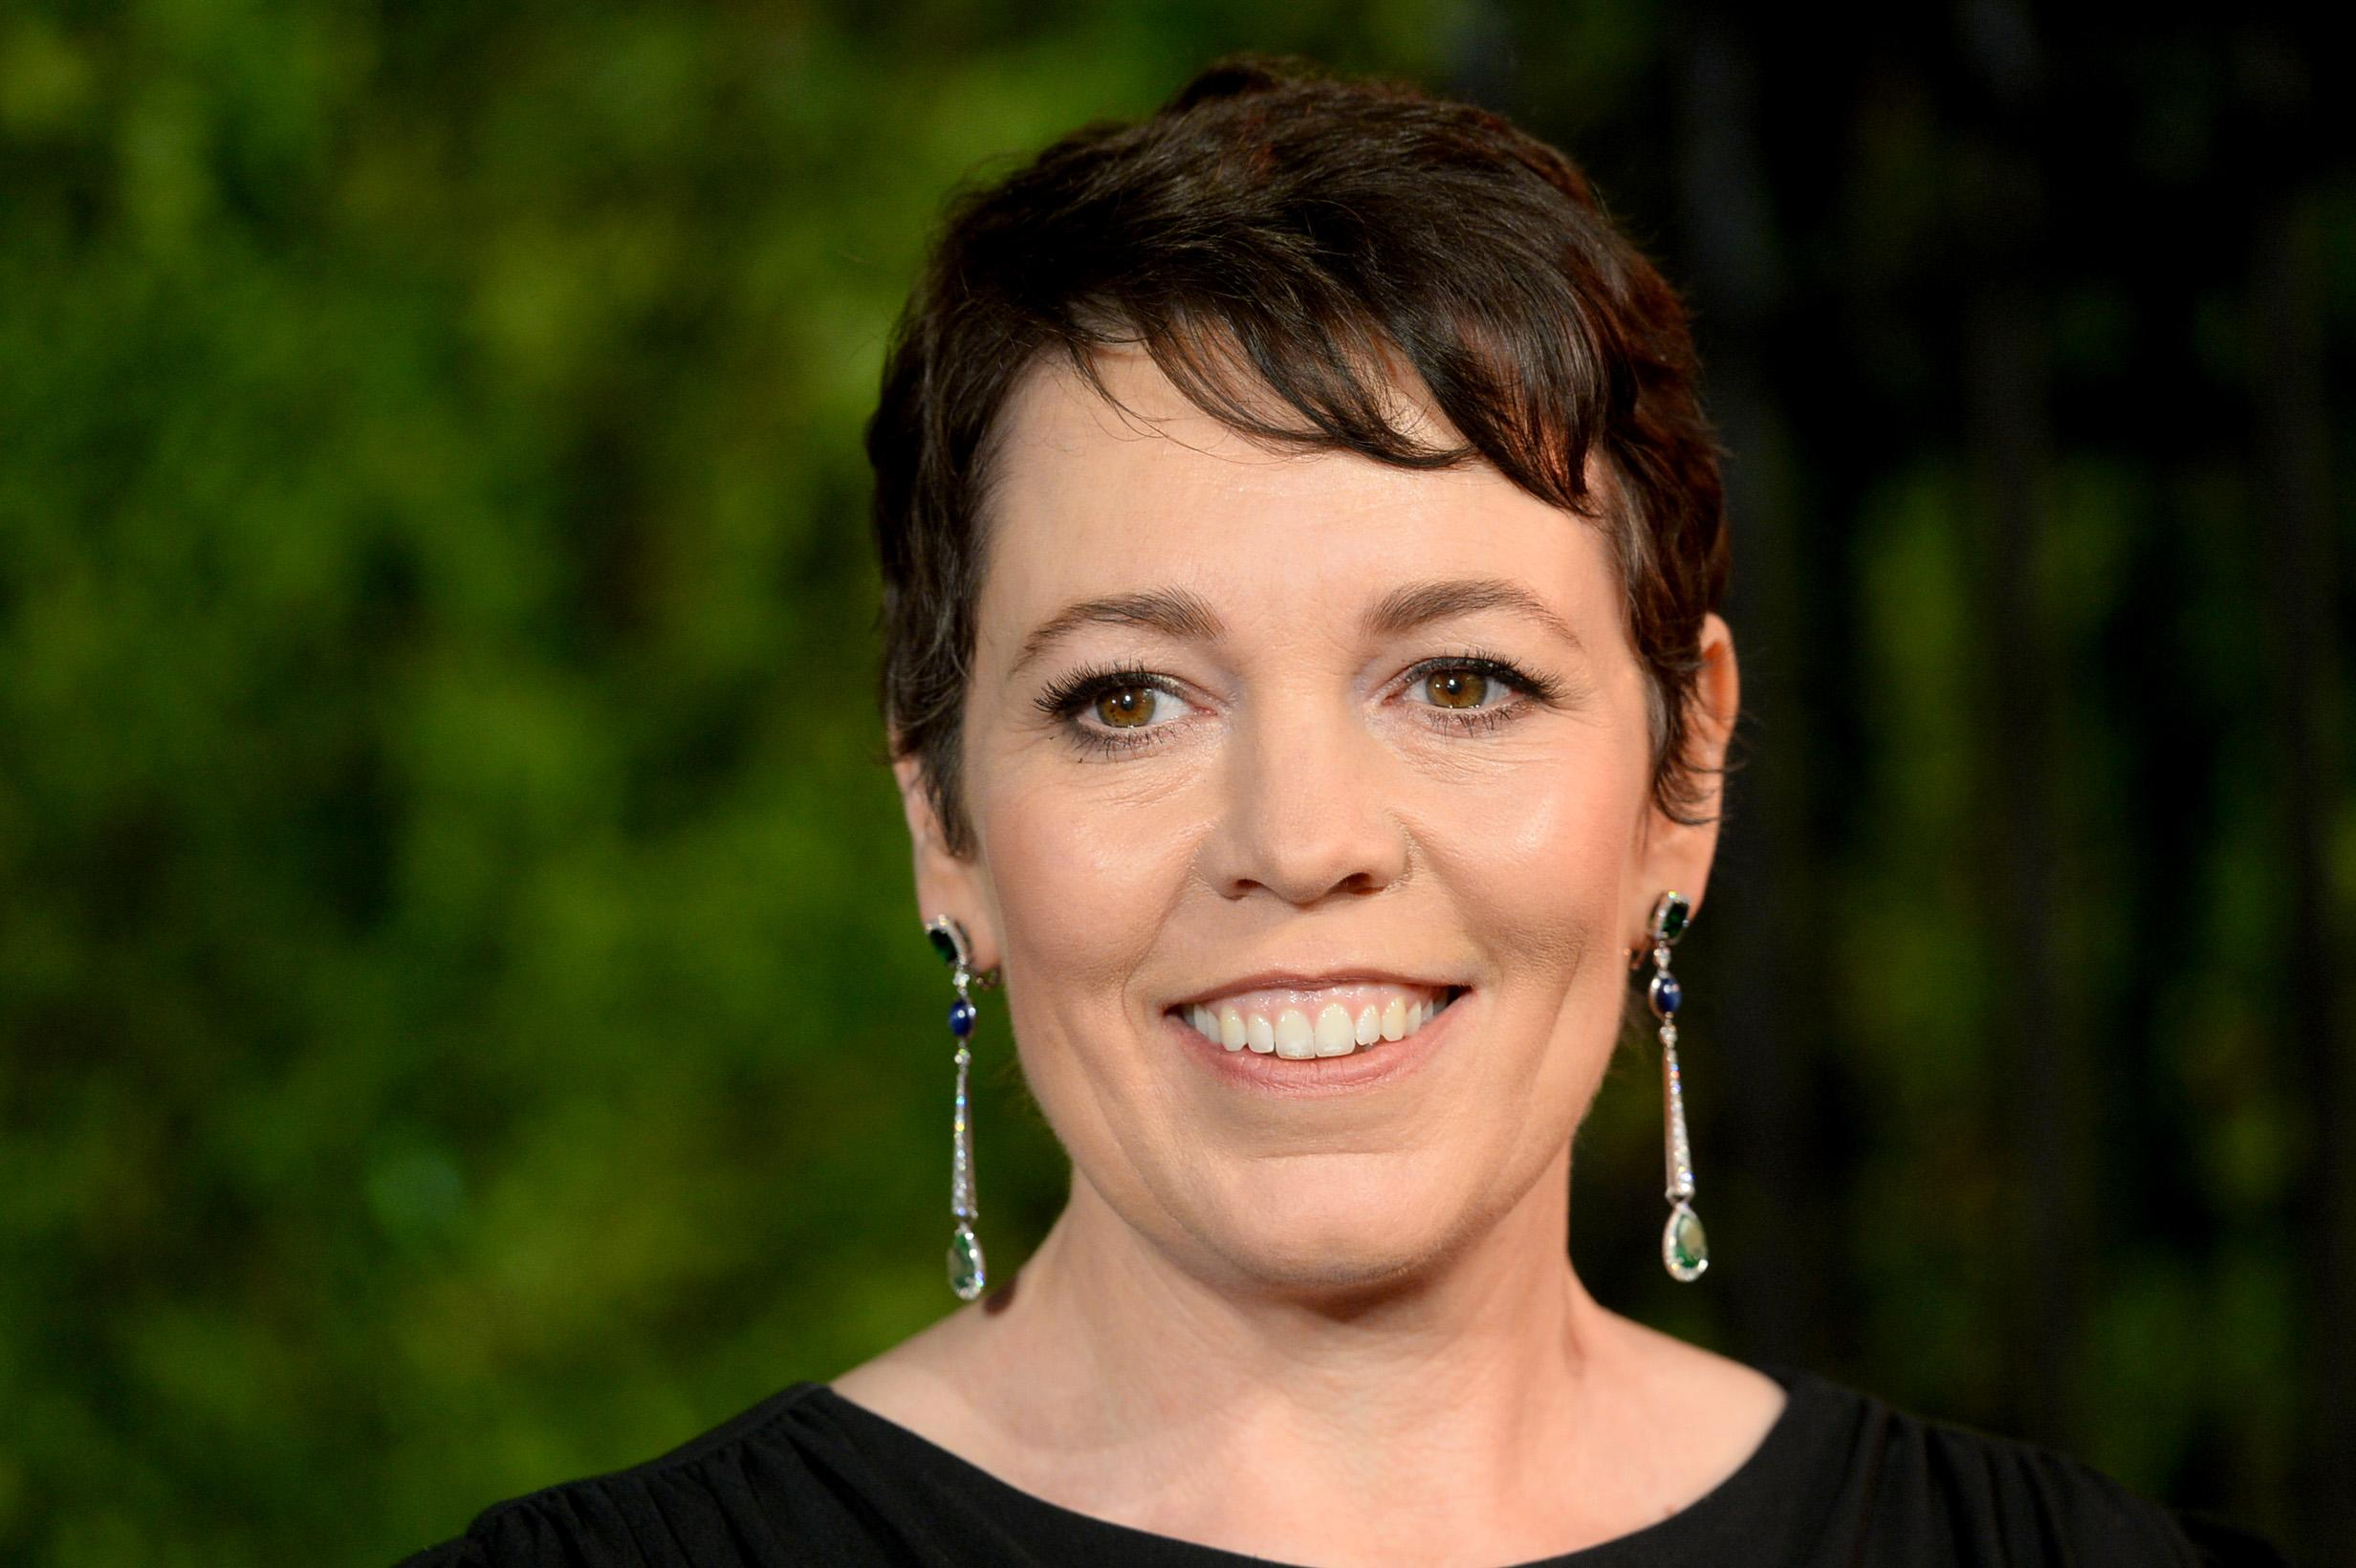 Olivia Colman and Helena Bonham Carter join cast of 'The Crown' at world premiere - Yahoo Style